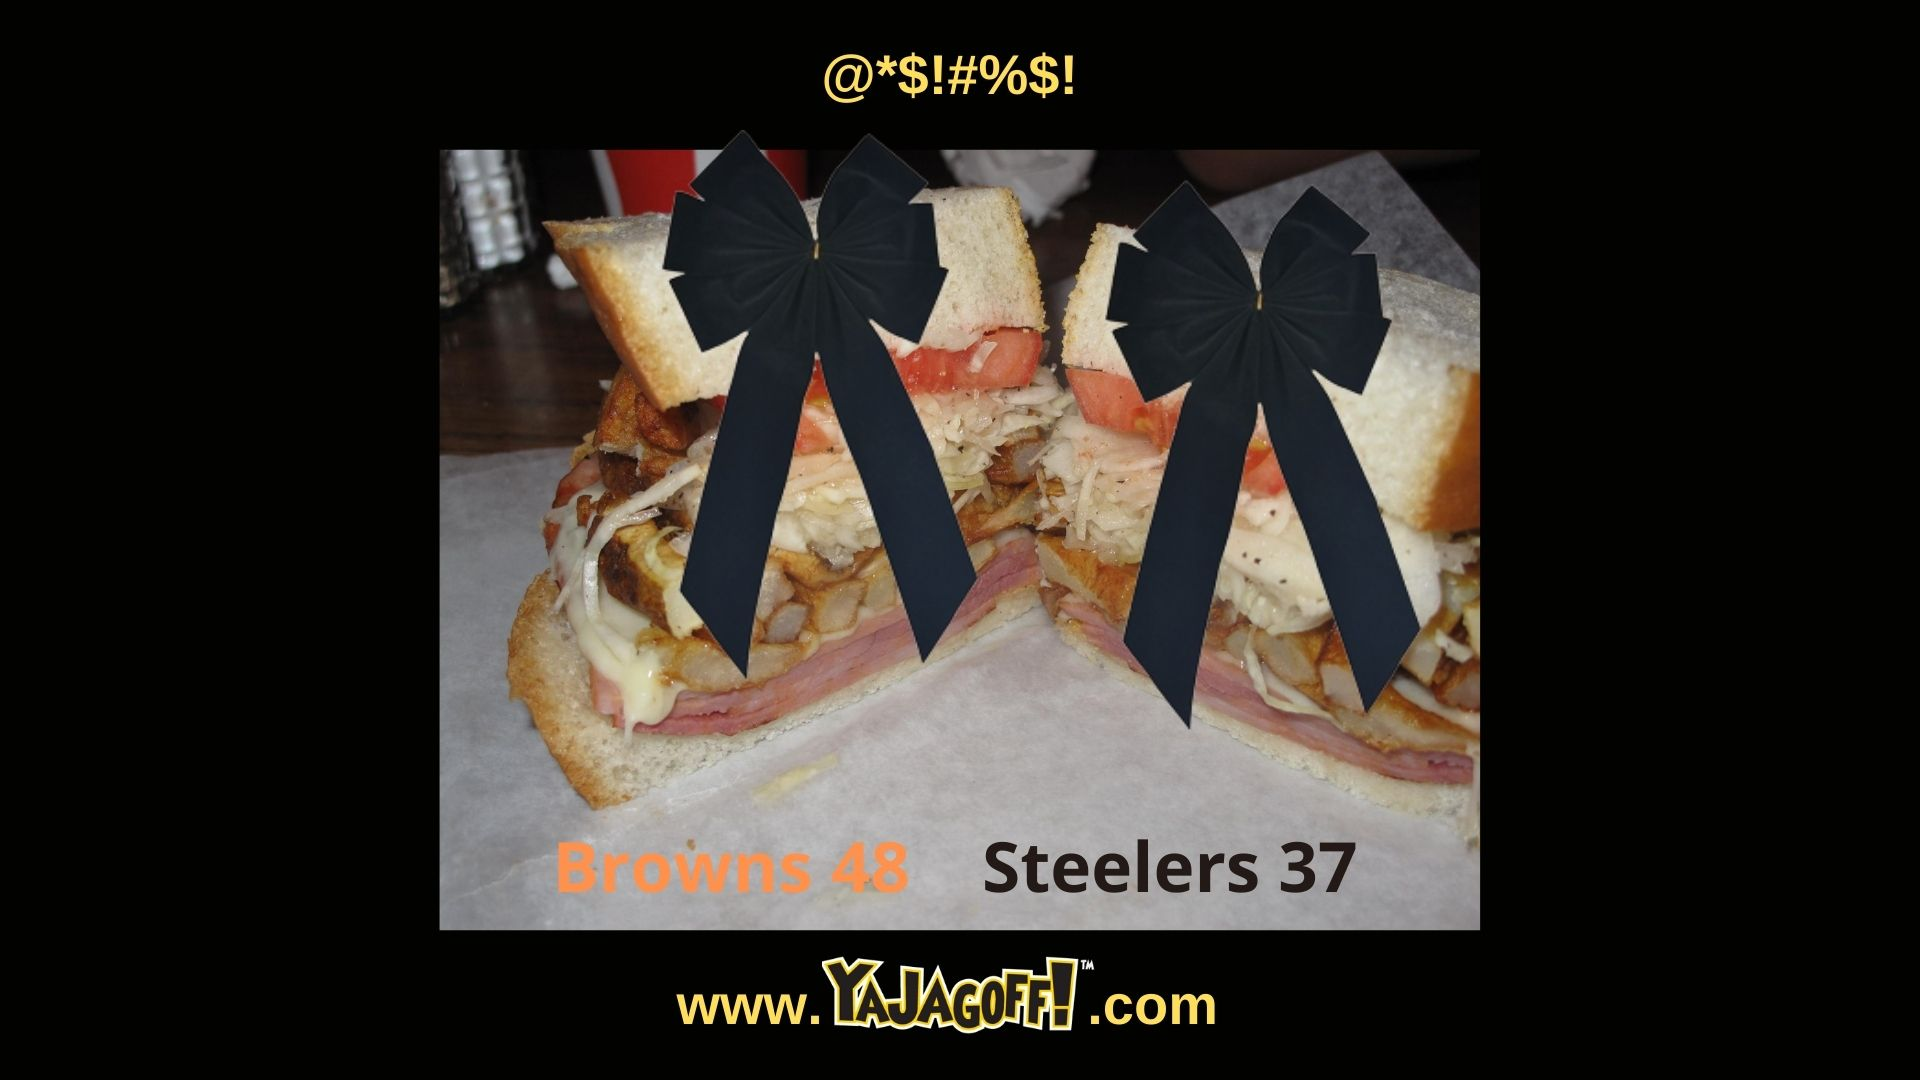 Steelers Lose to Browns